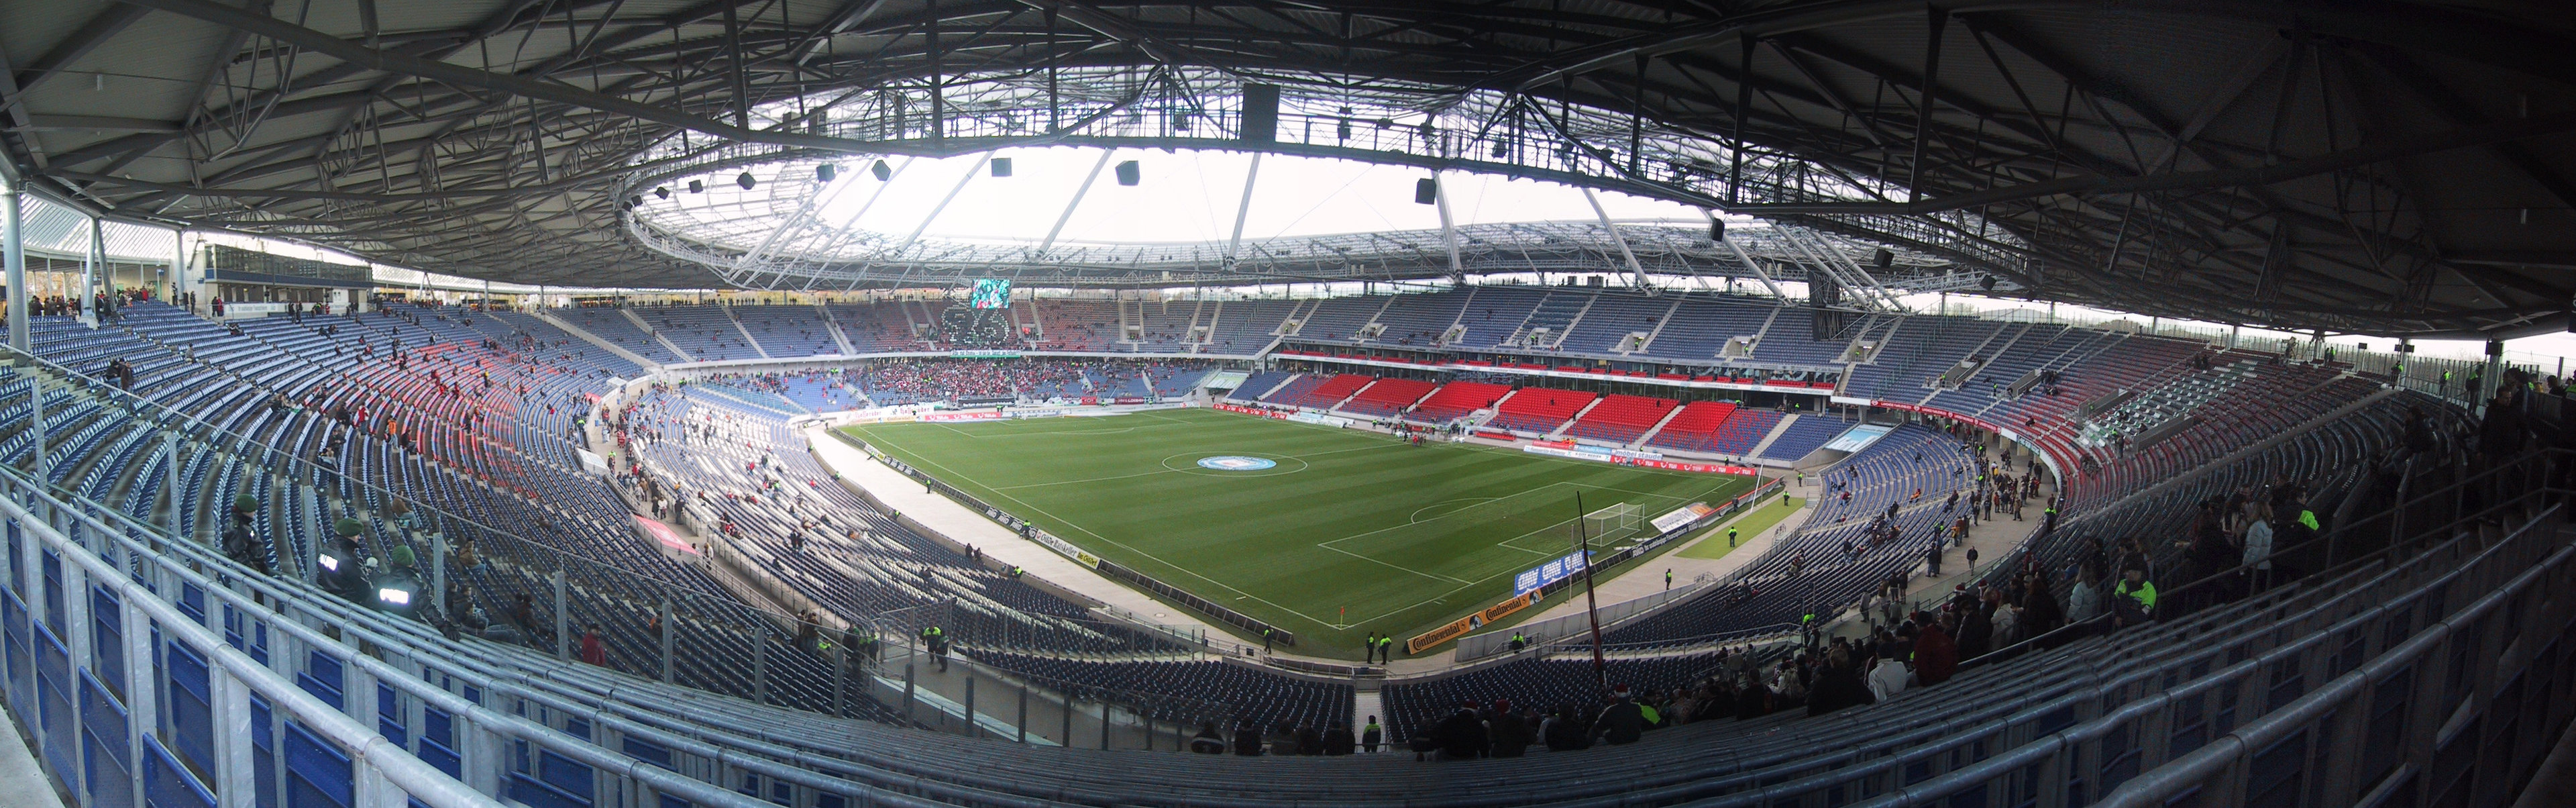 The game was due to be played at the Niedersachsenstadion